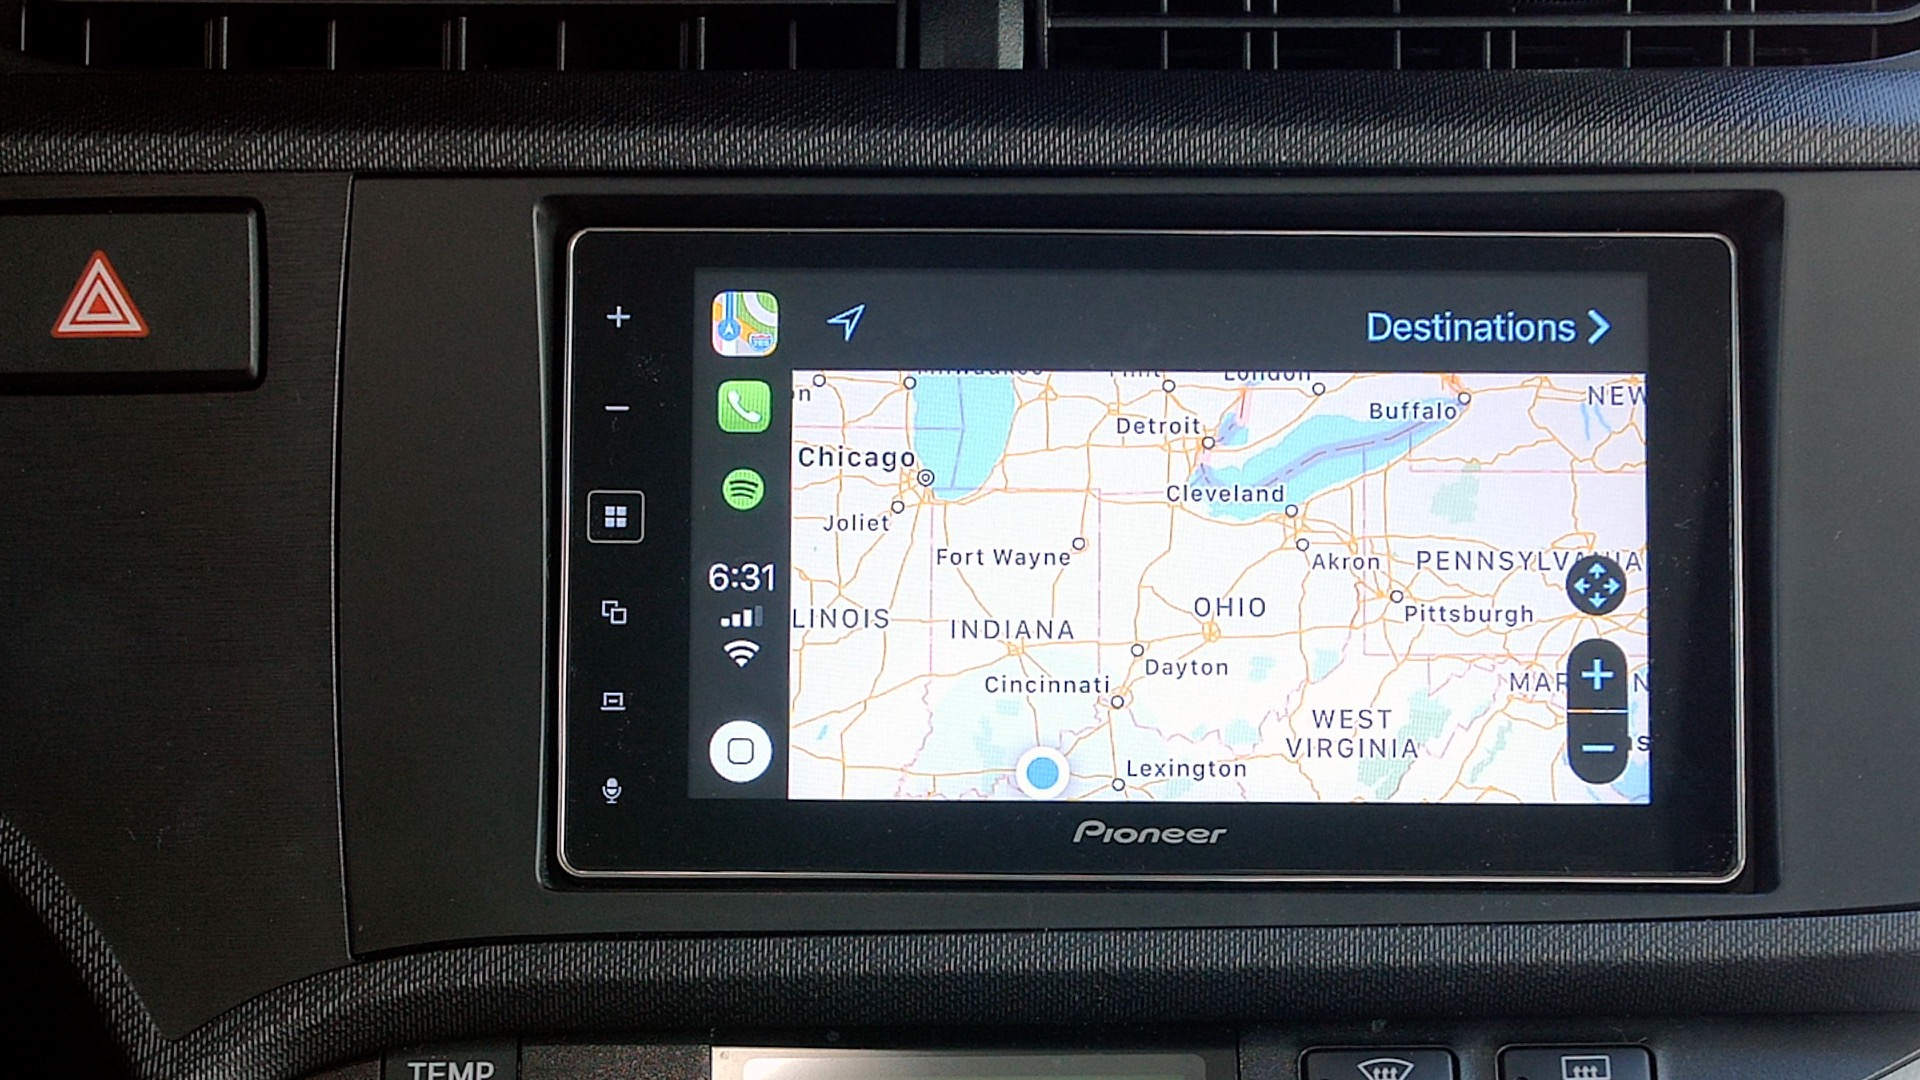 Hands-on: Pioneer MVH-1400NEX offers affordable CarPlay in a simple